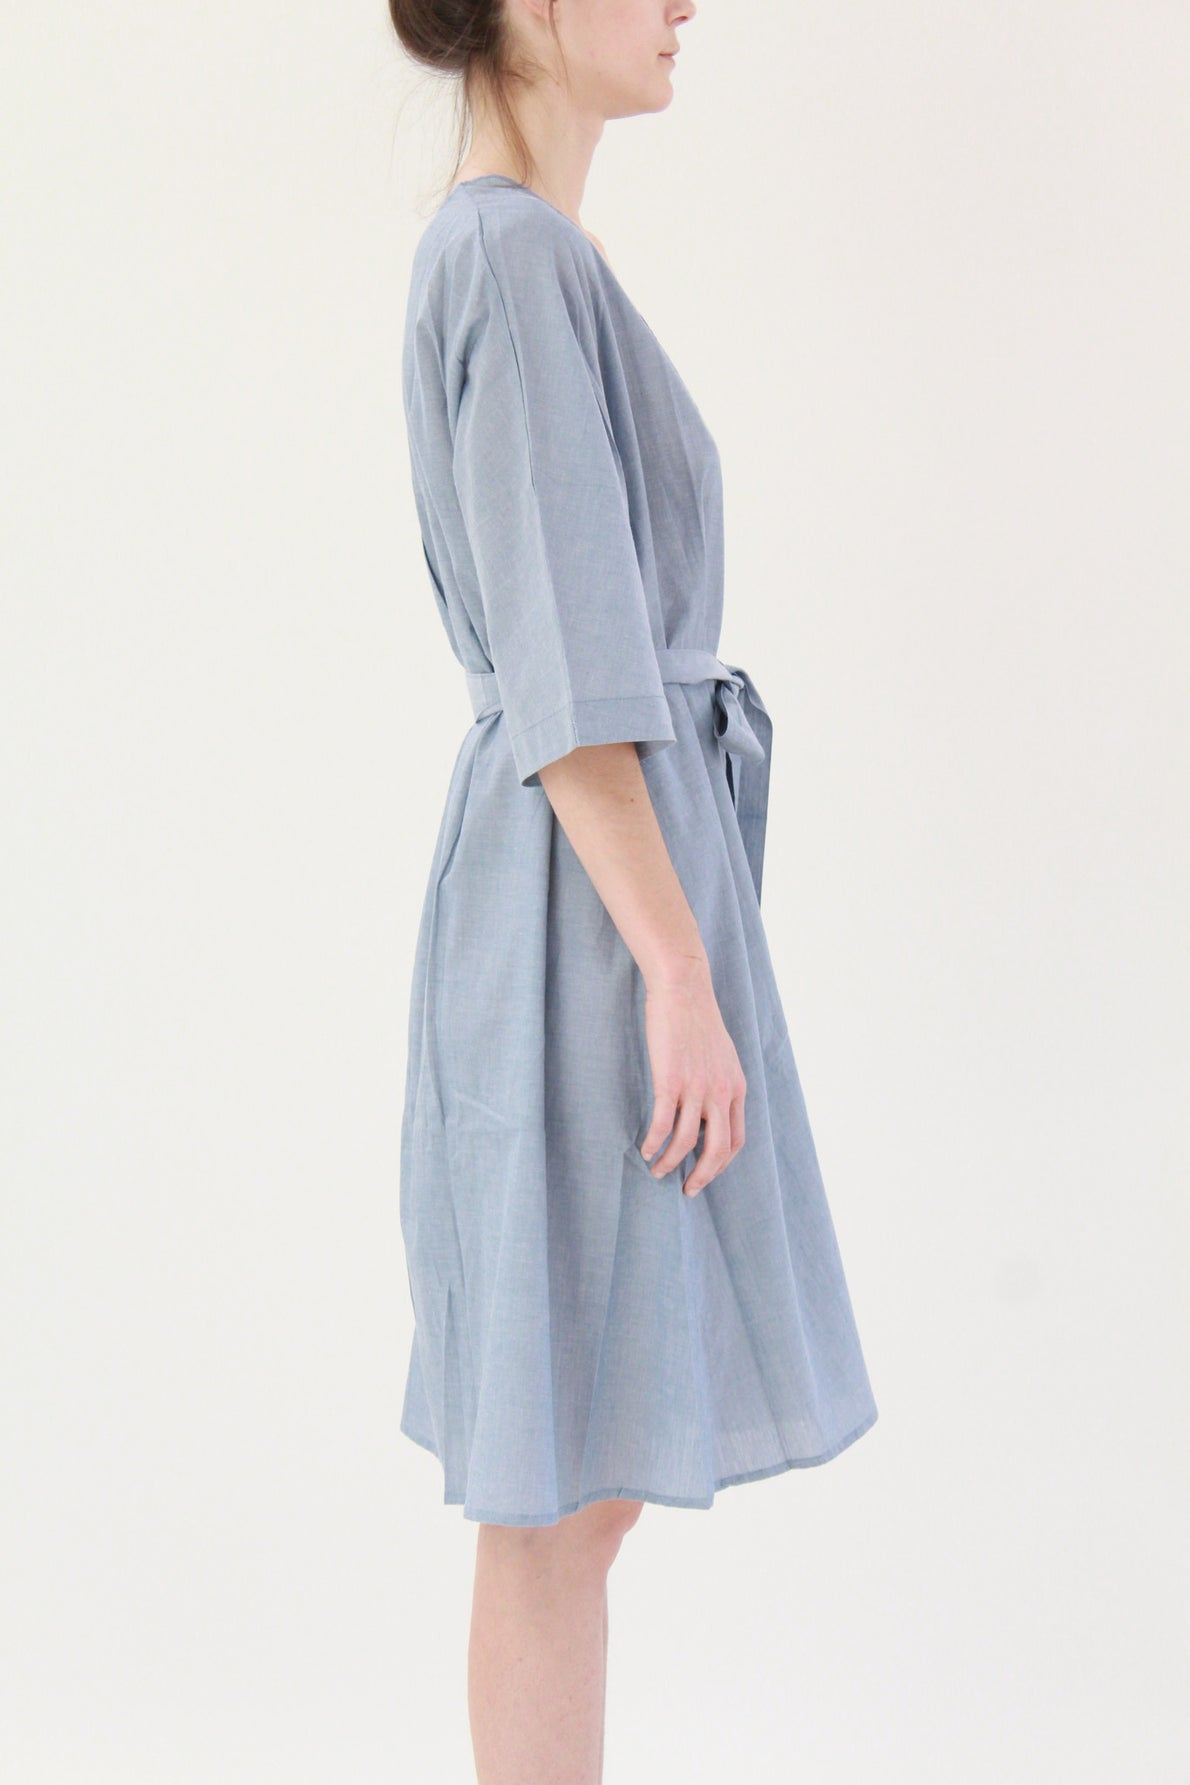 Beklina Kowtow Domus Shirt Dress Blue Chambray